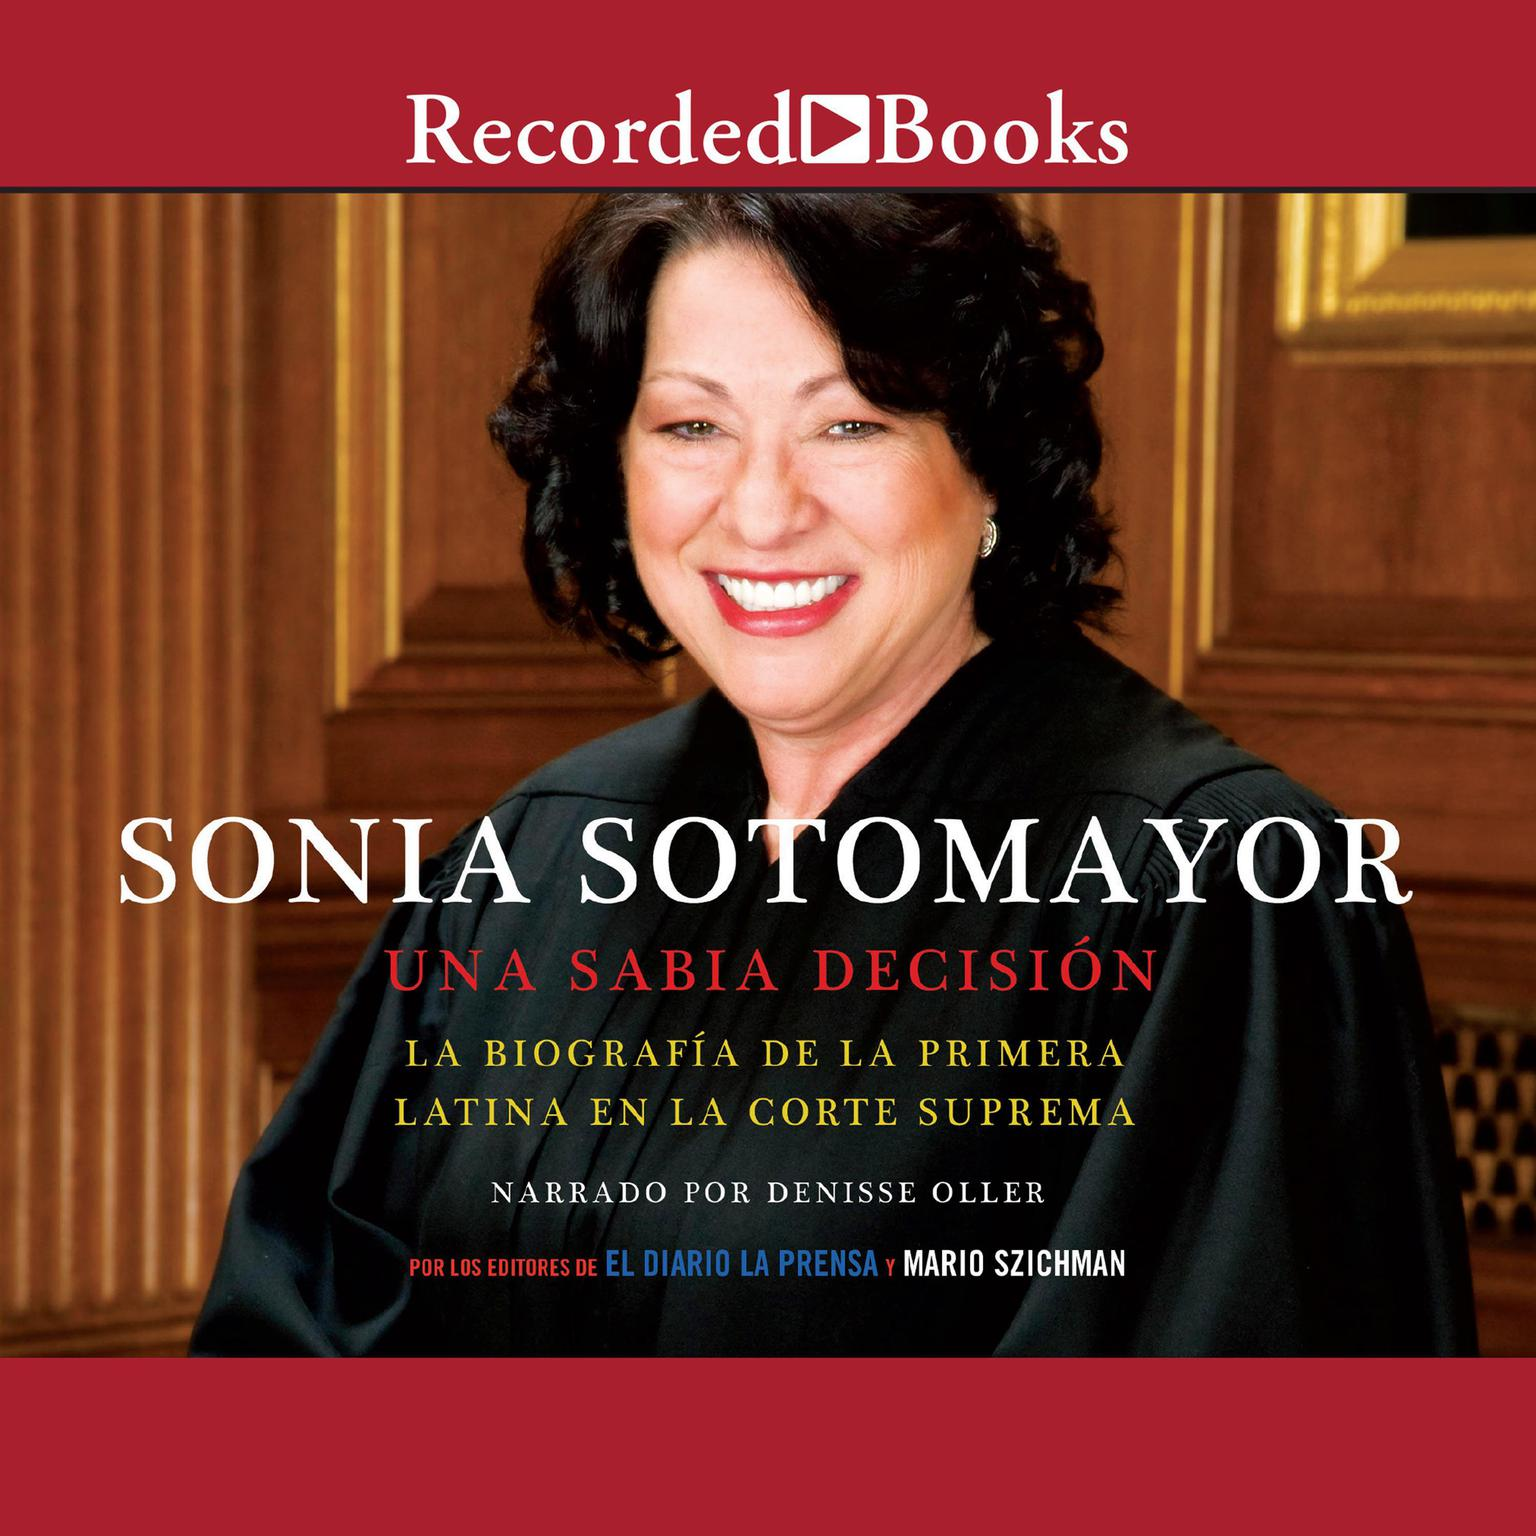 Printable Sonia Sotomayor (Sonia Sotomayor: A Wise Decision): Una sabia decision Audiobook Cover Art